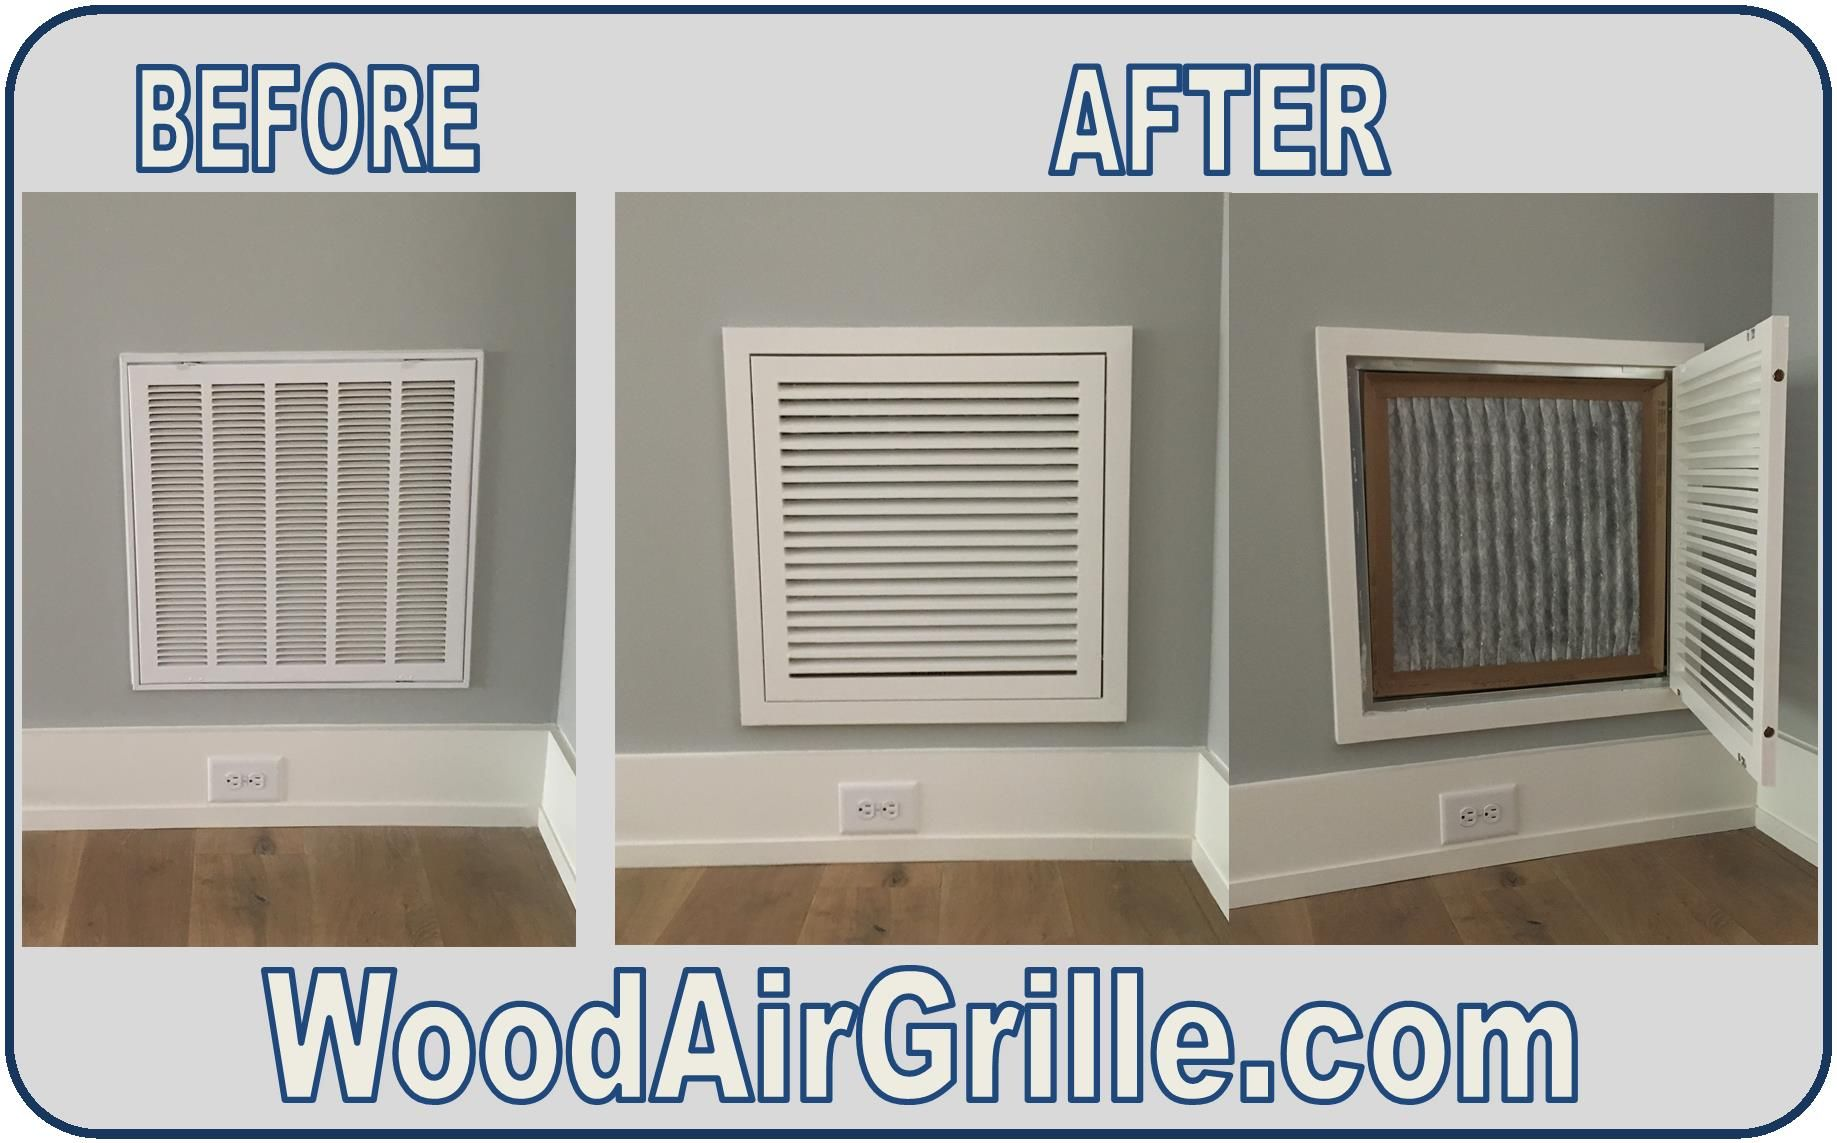 Upgrading to a Wood Return Air Filter Grille from